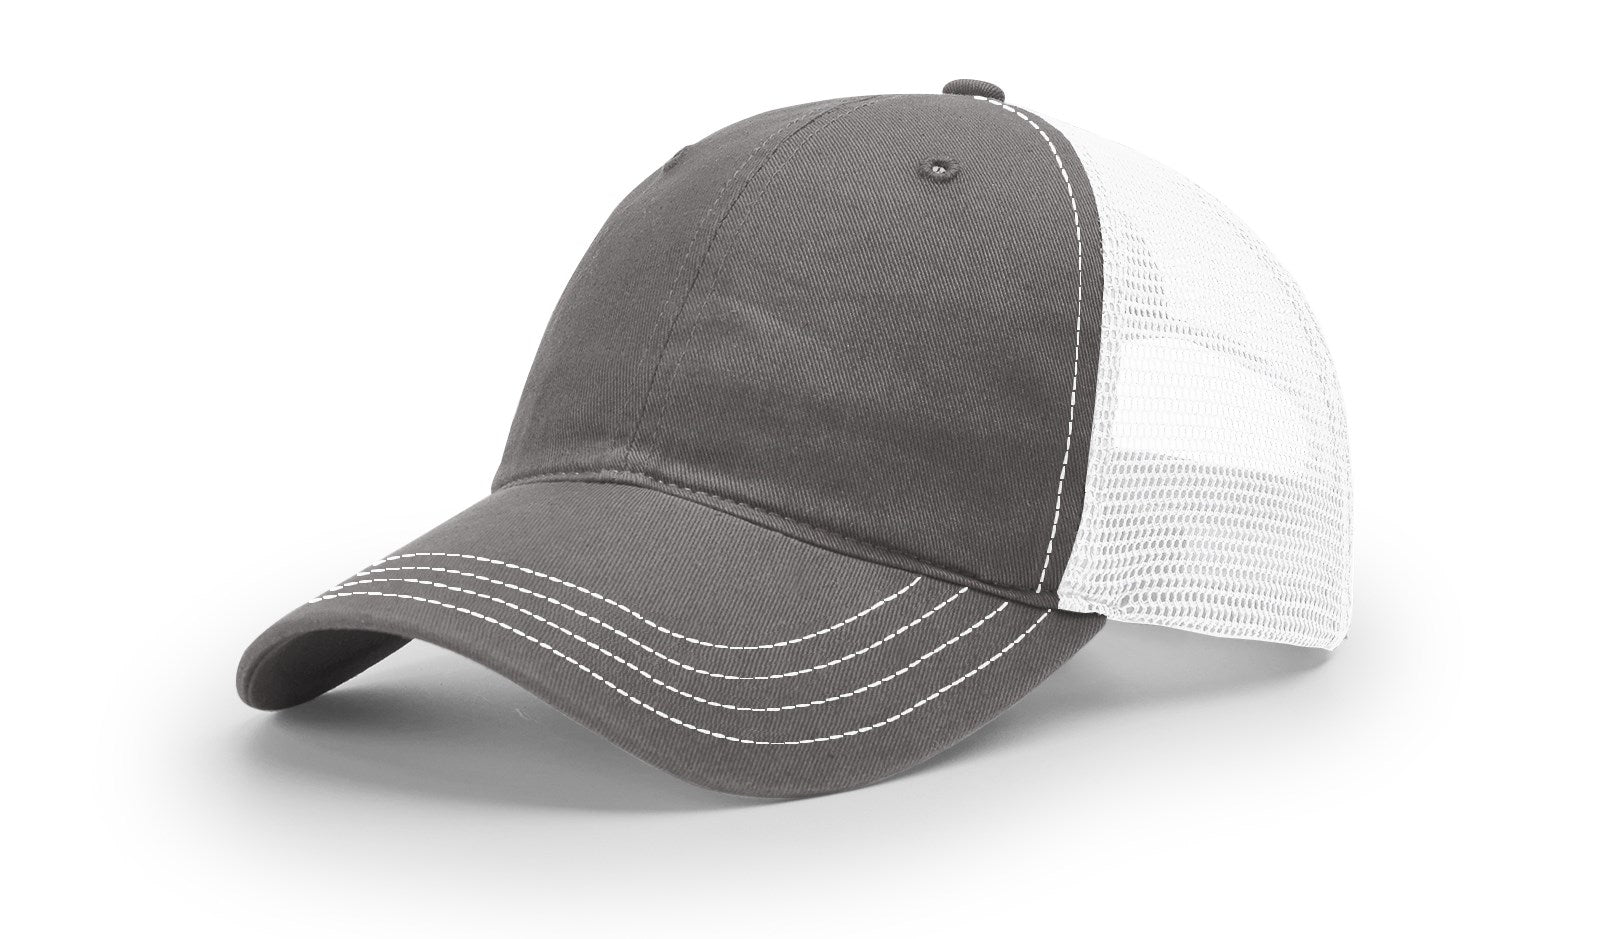 Trucker or Visor Hat